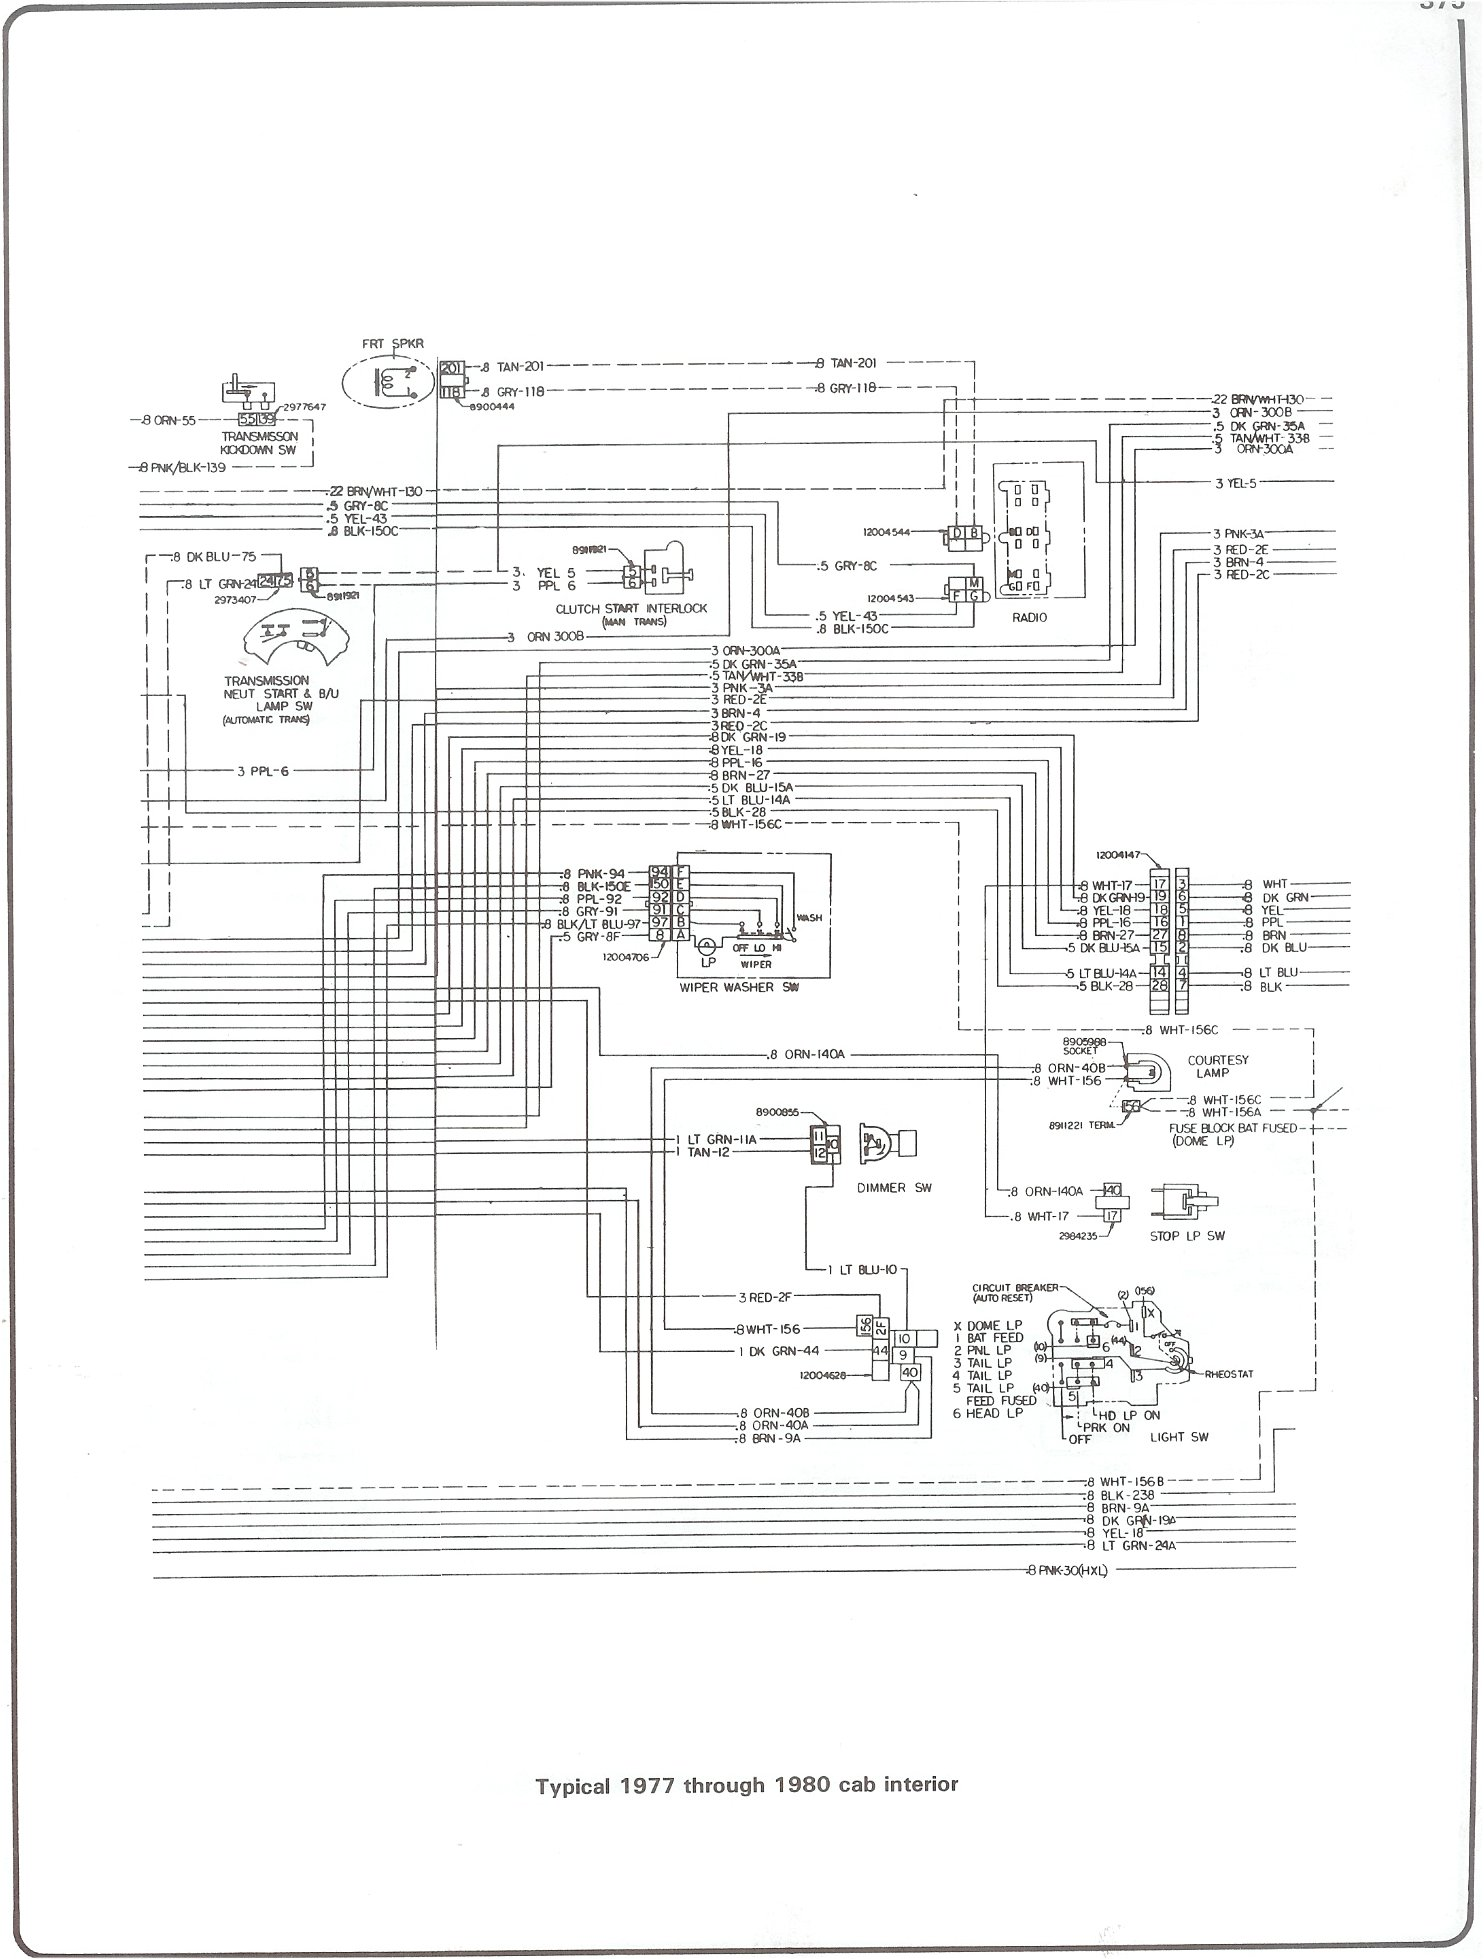 95 Camaro Fuse Panel Diagram Free Wiring For You 1995 Chevy S10 Box